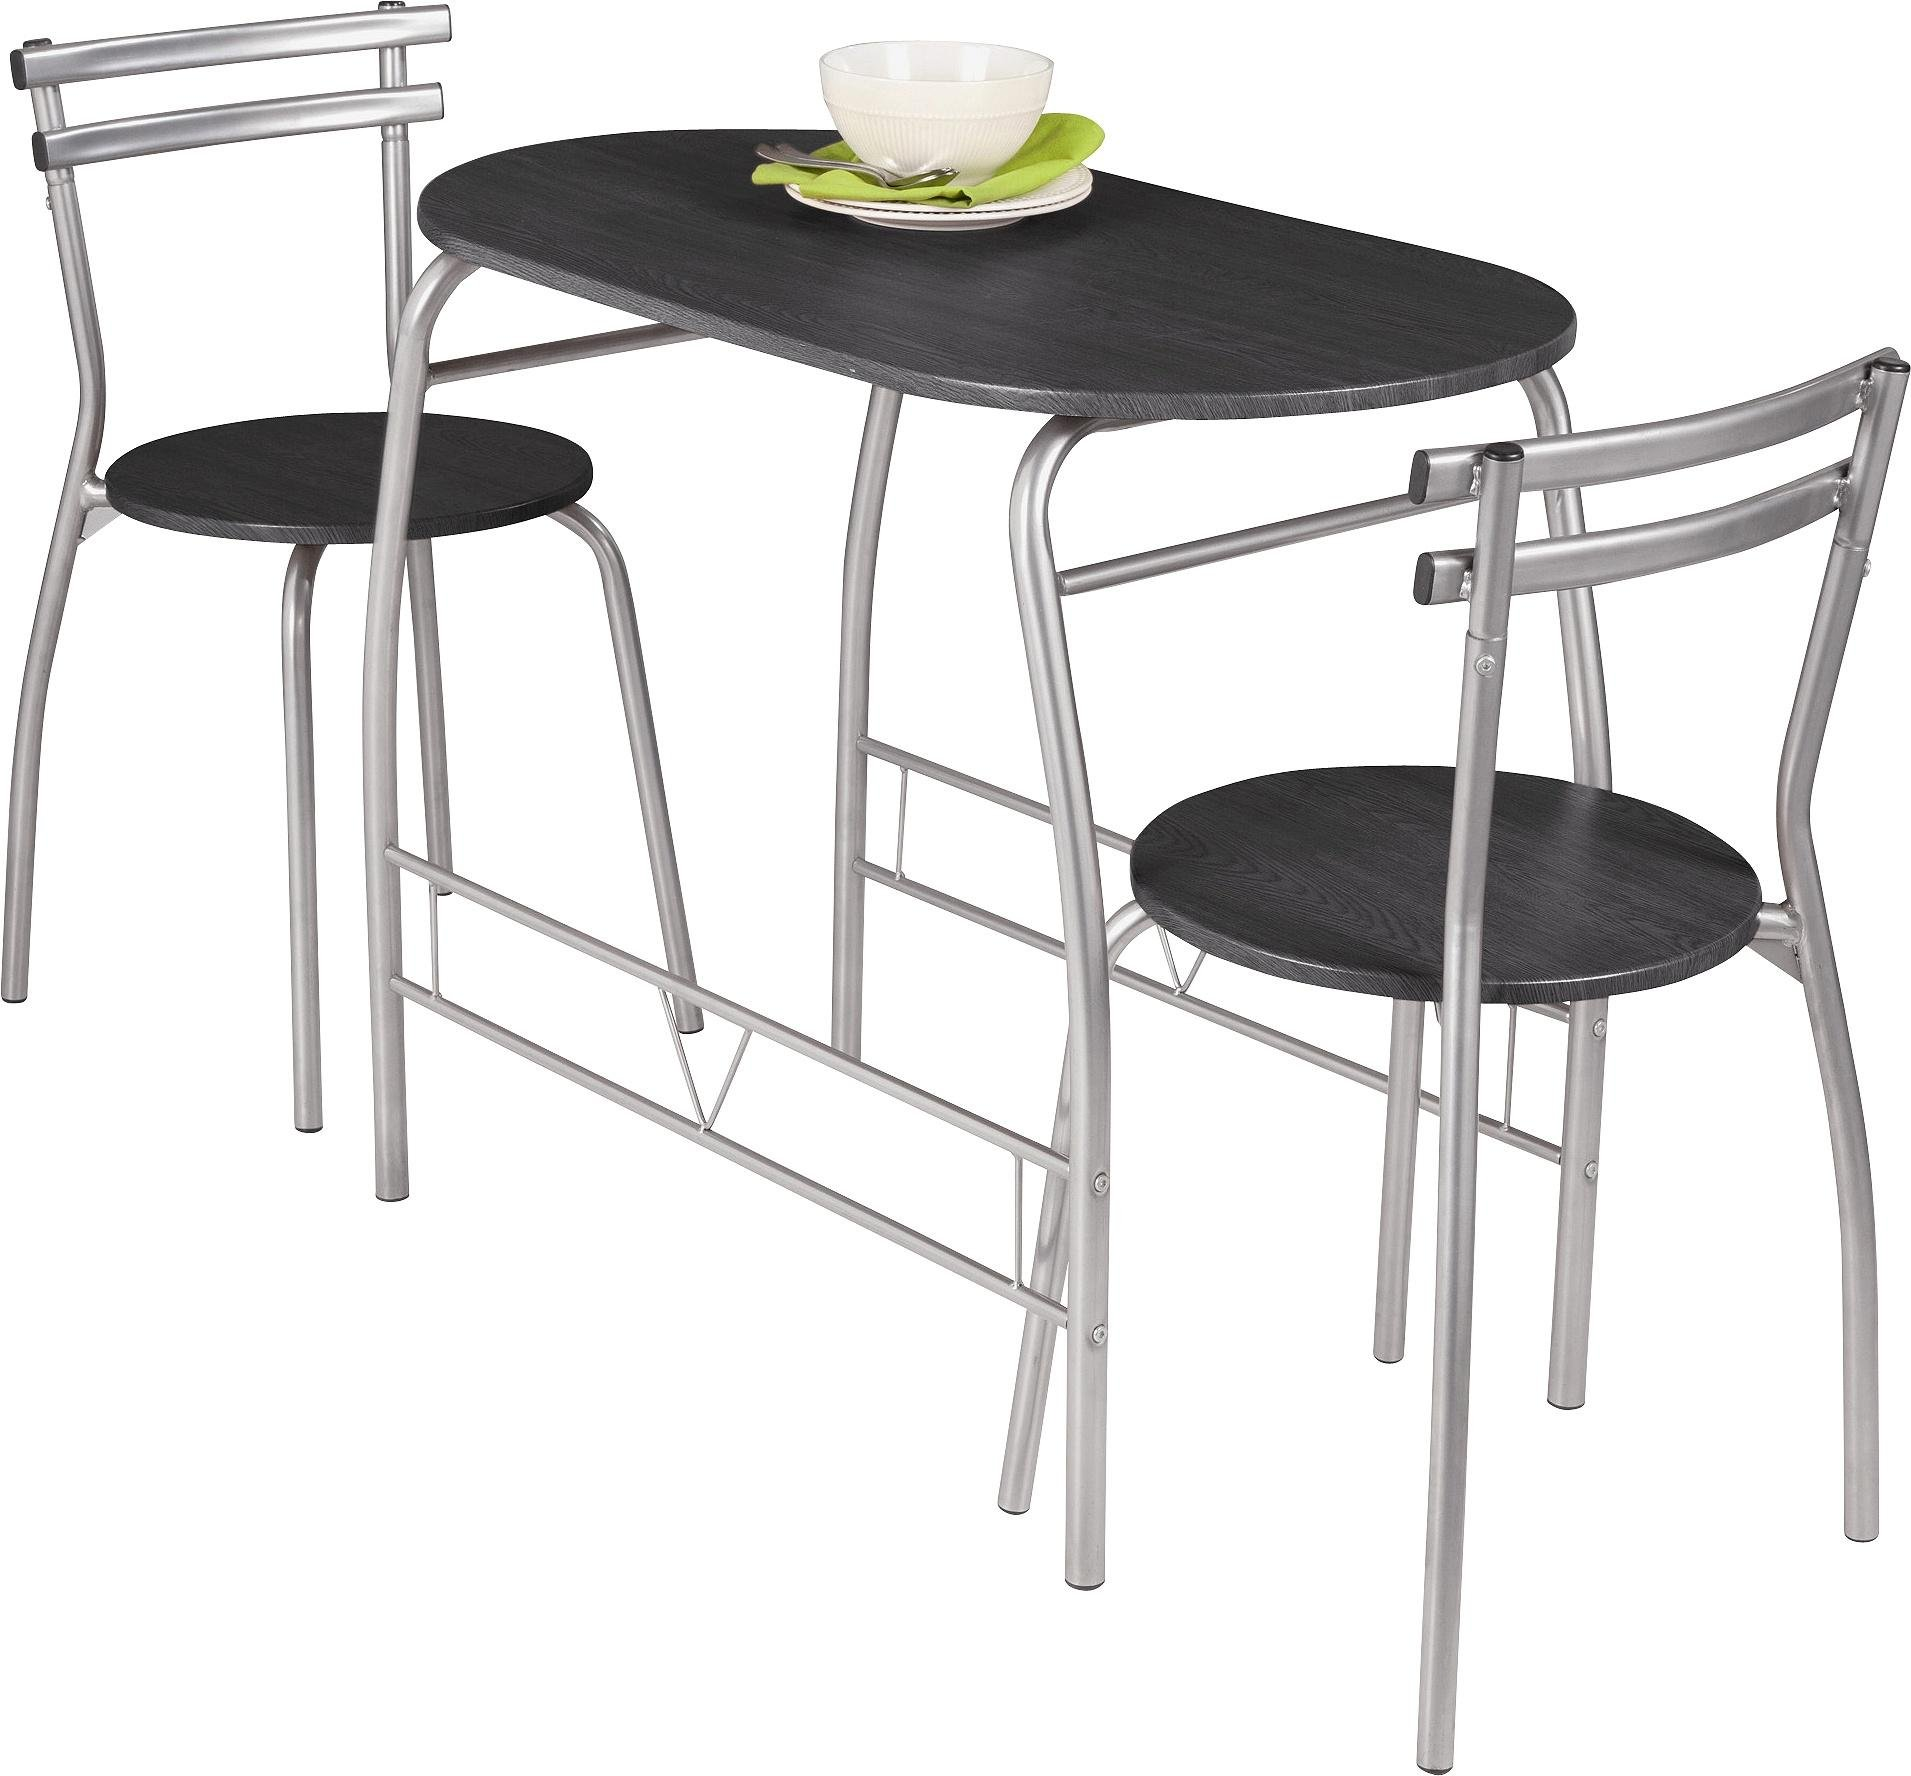 drop leaf table and chairs argos tiger print dining home vegas 2 black 6006486